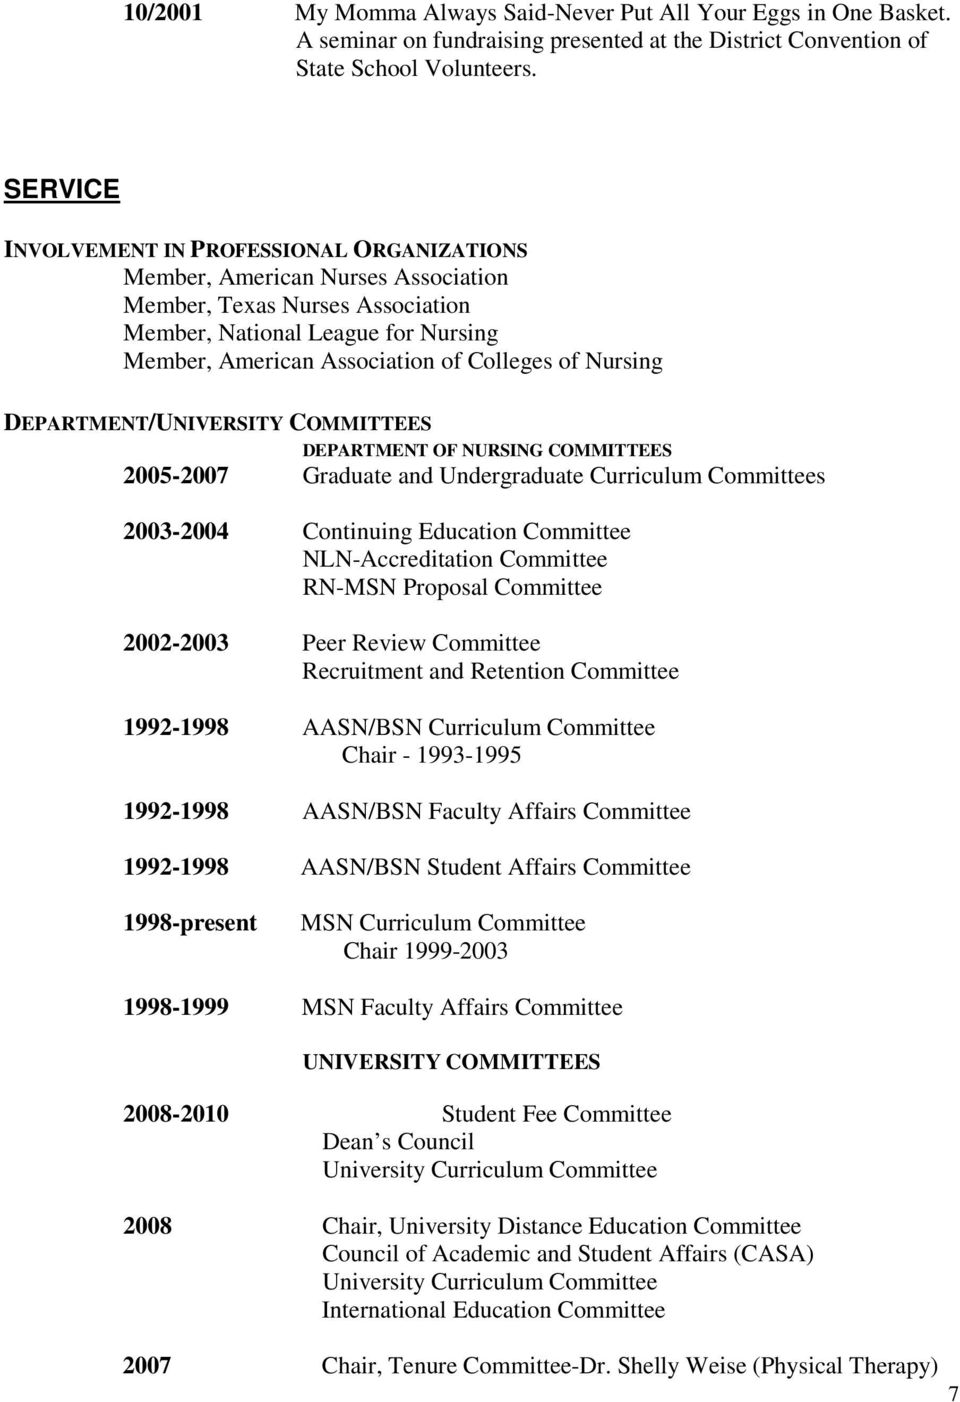 Nursing DEPARTMENT/UNIVERSITY COMMITTEES DEPARTMENT OF NURSING COMMITTEES 2005-2007 Graduate and Undergraduate Curriculum Committees 2003-2004 Continuing Education Committee NLN-Accreditation